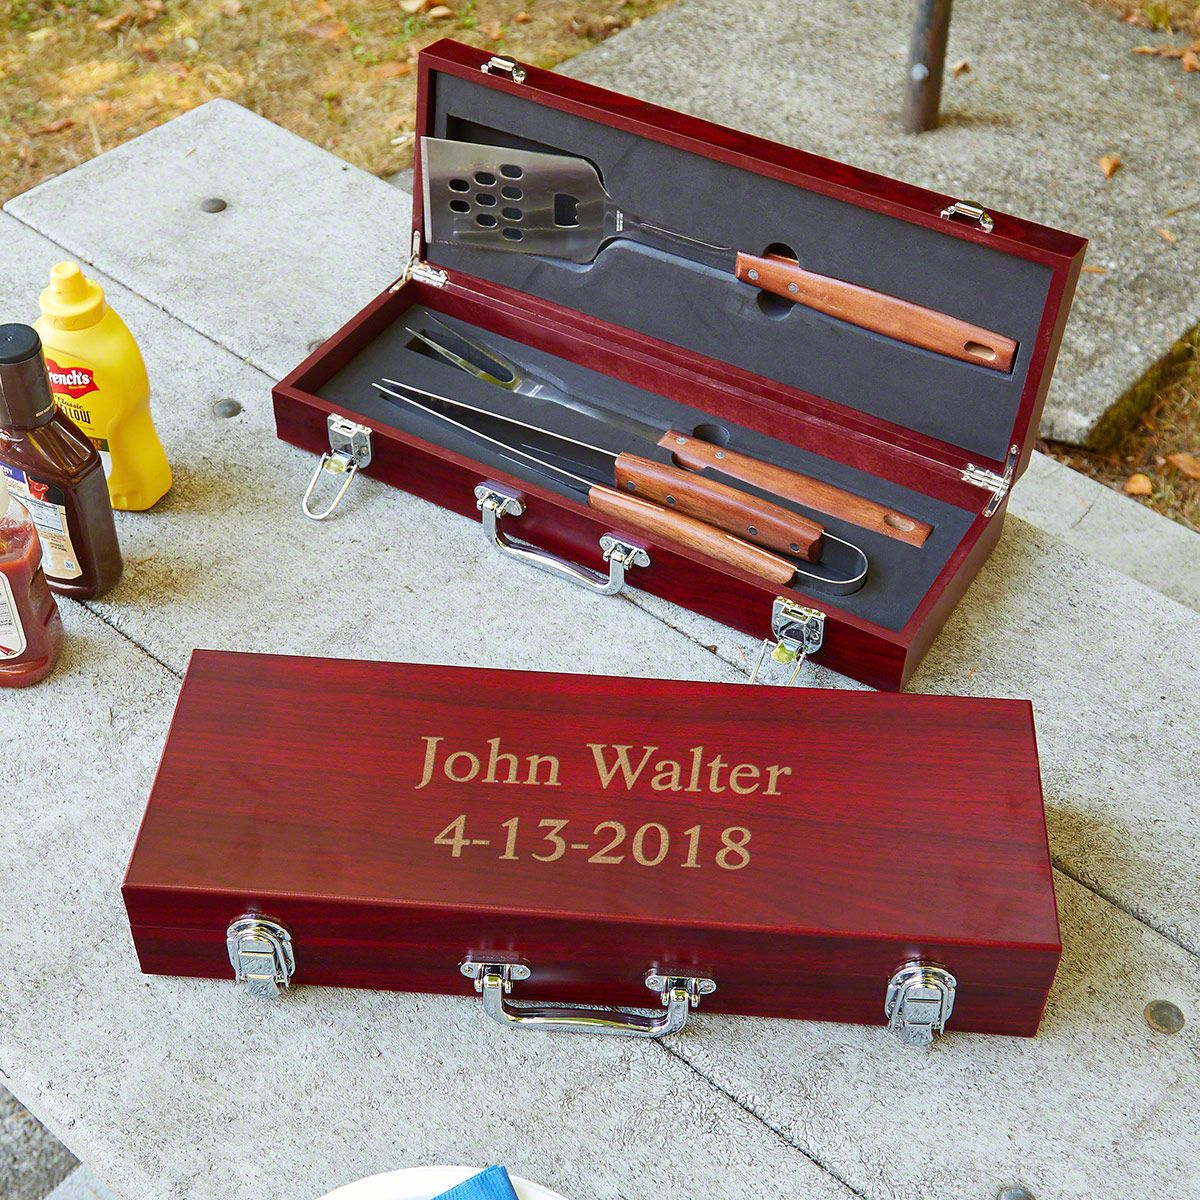 Montgomery Personalized Grilling Tool Set